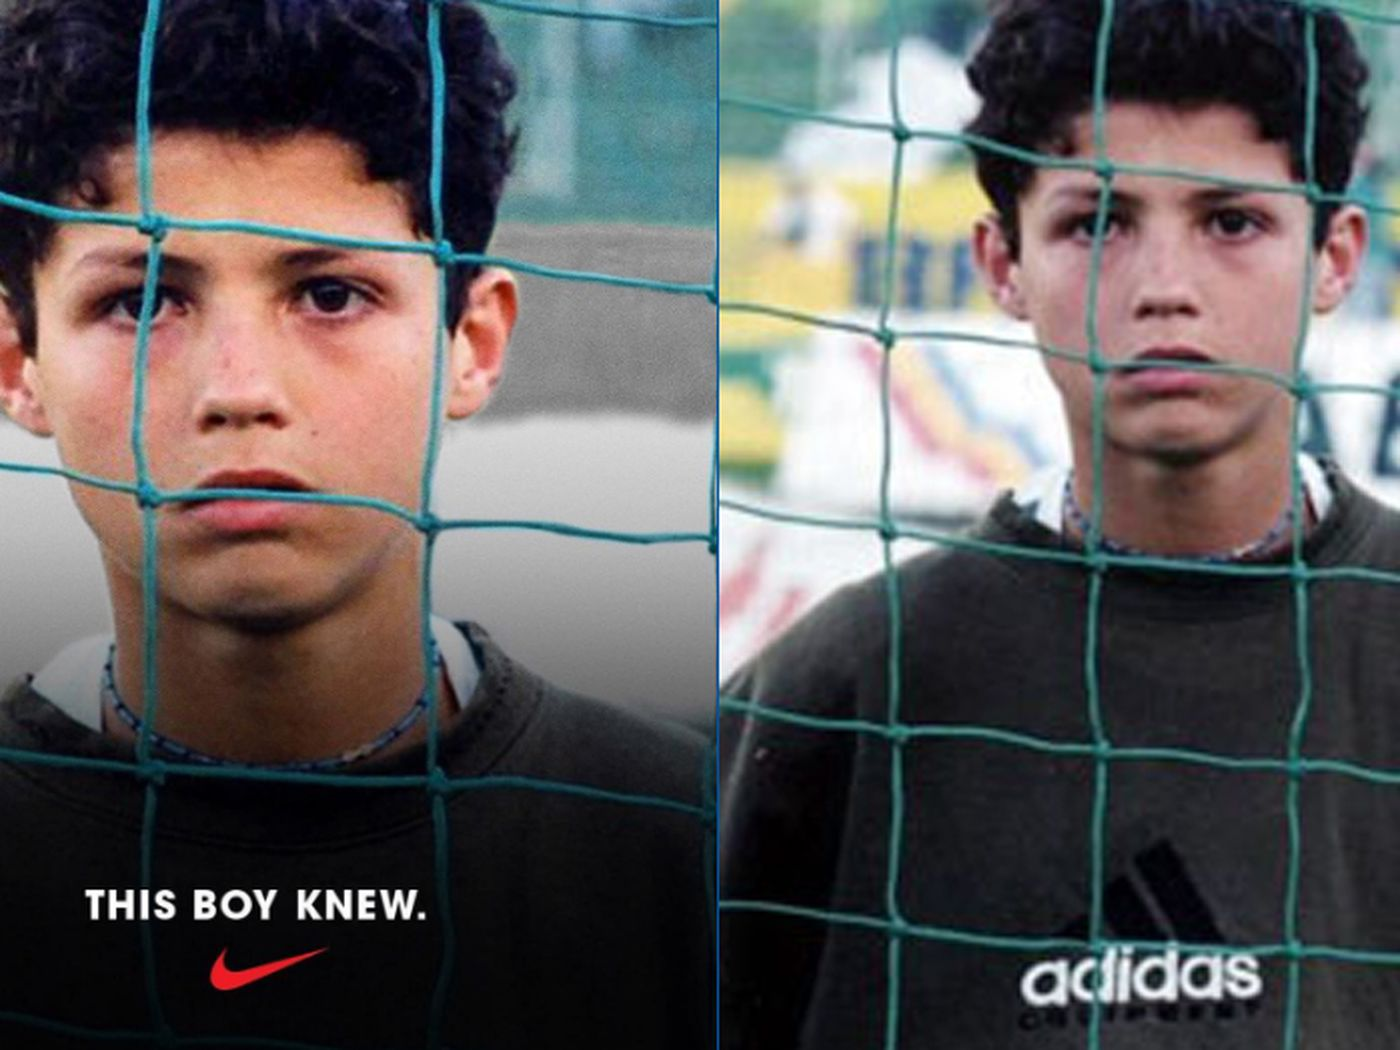 Cristiano Ronaldo S Childhood Photo Was Cropped By Nike To Hide His